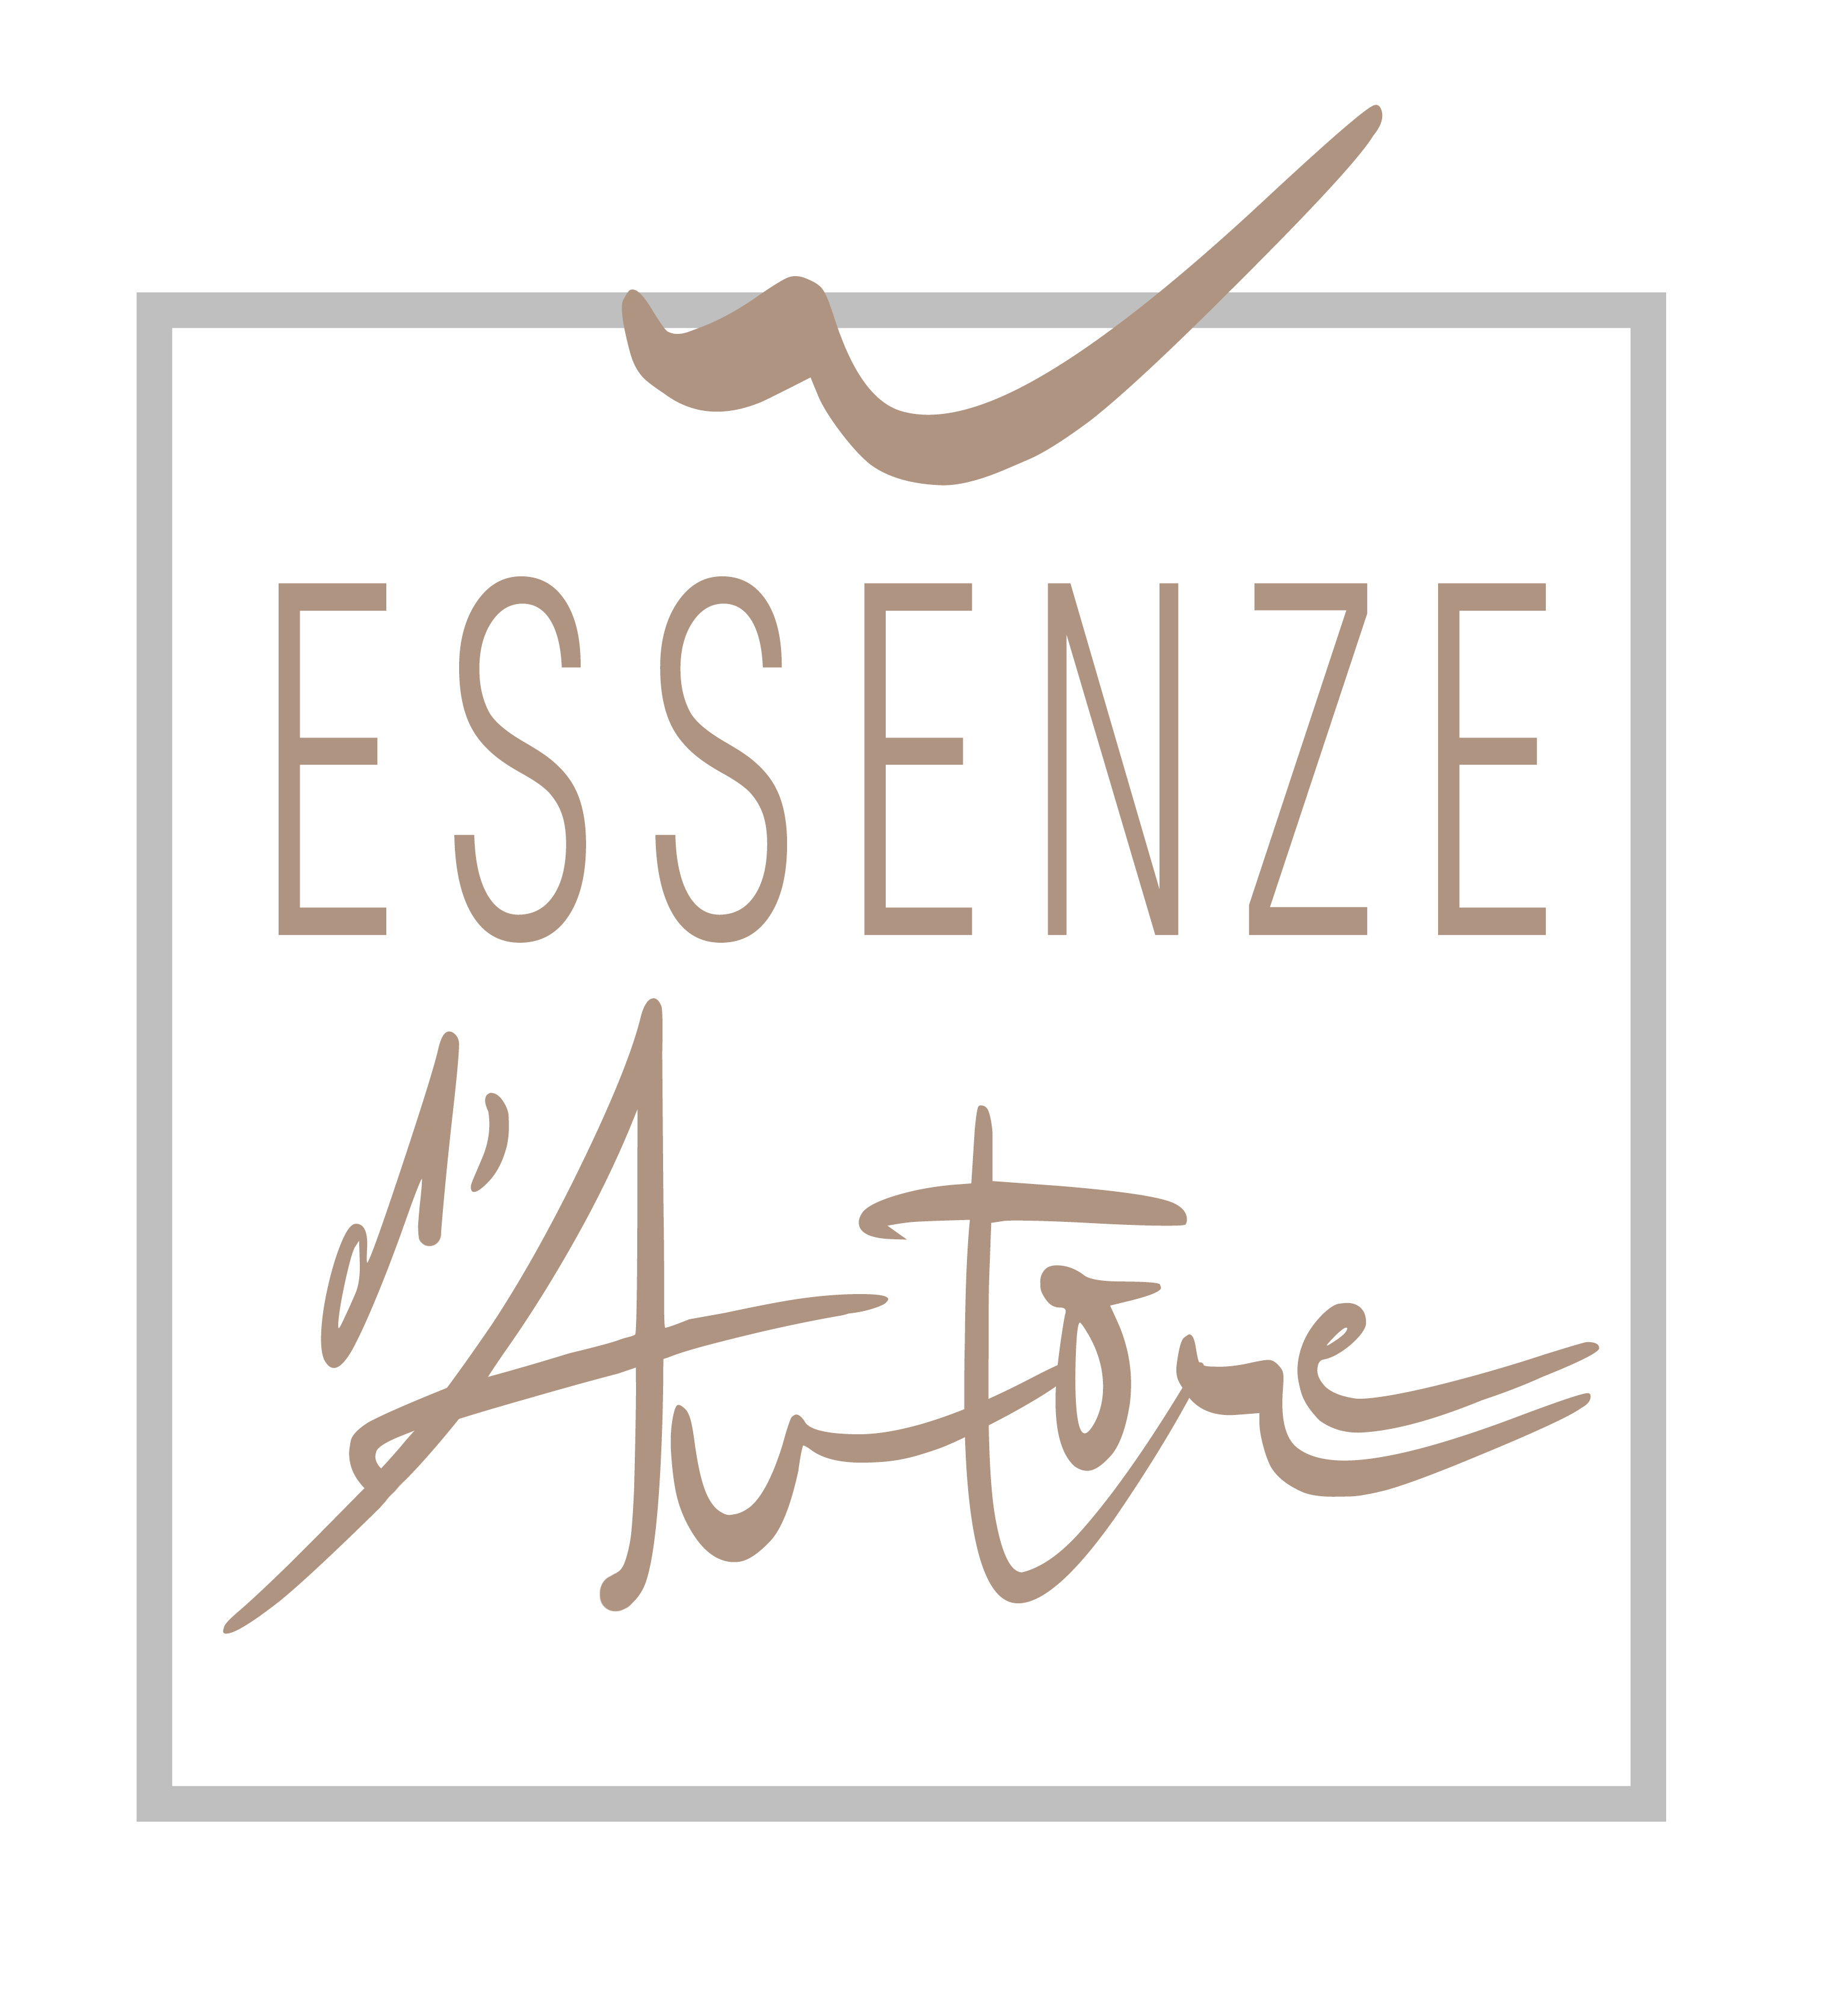 Essenze d'Autore